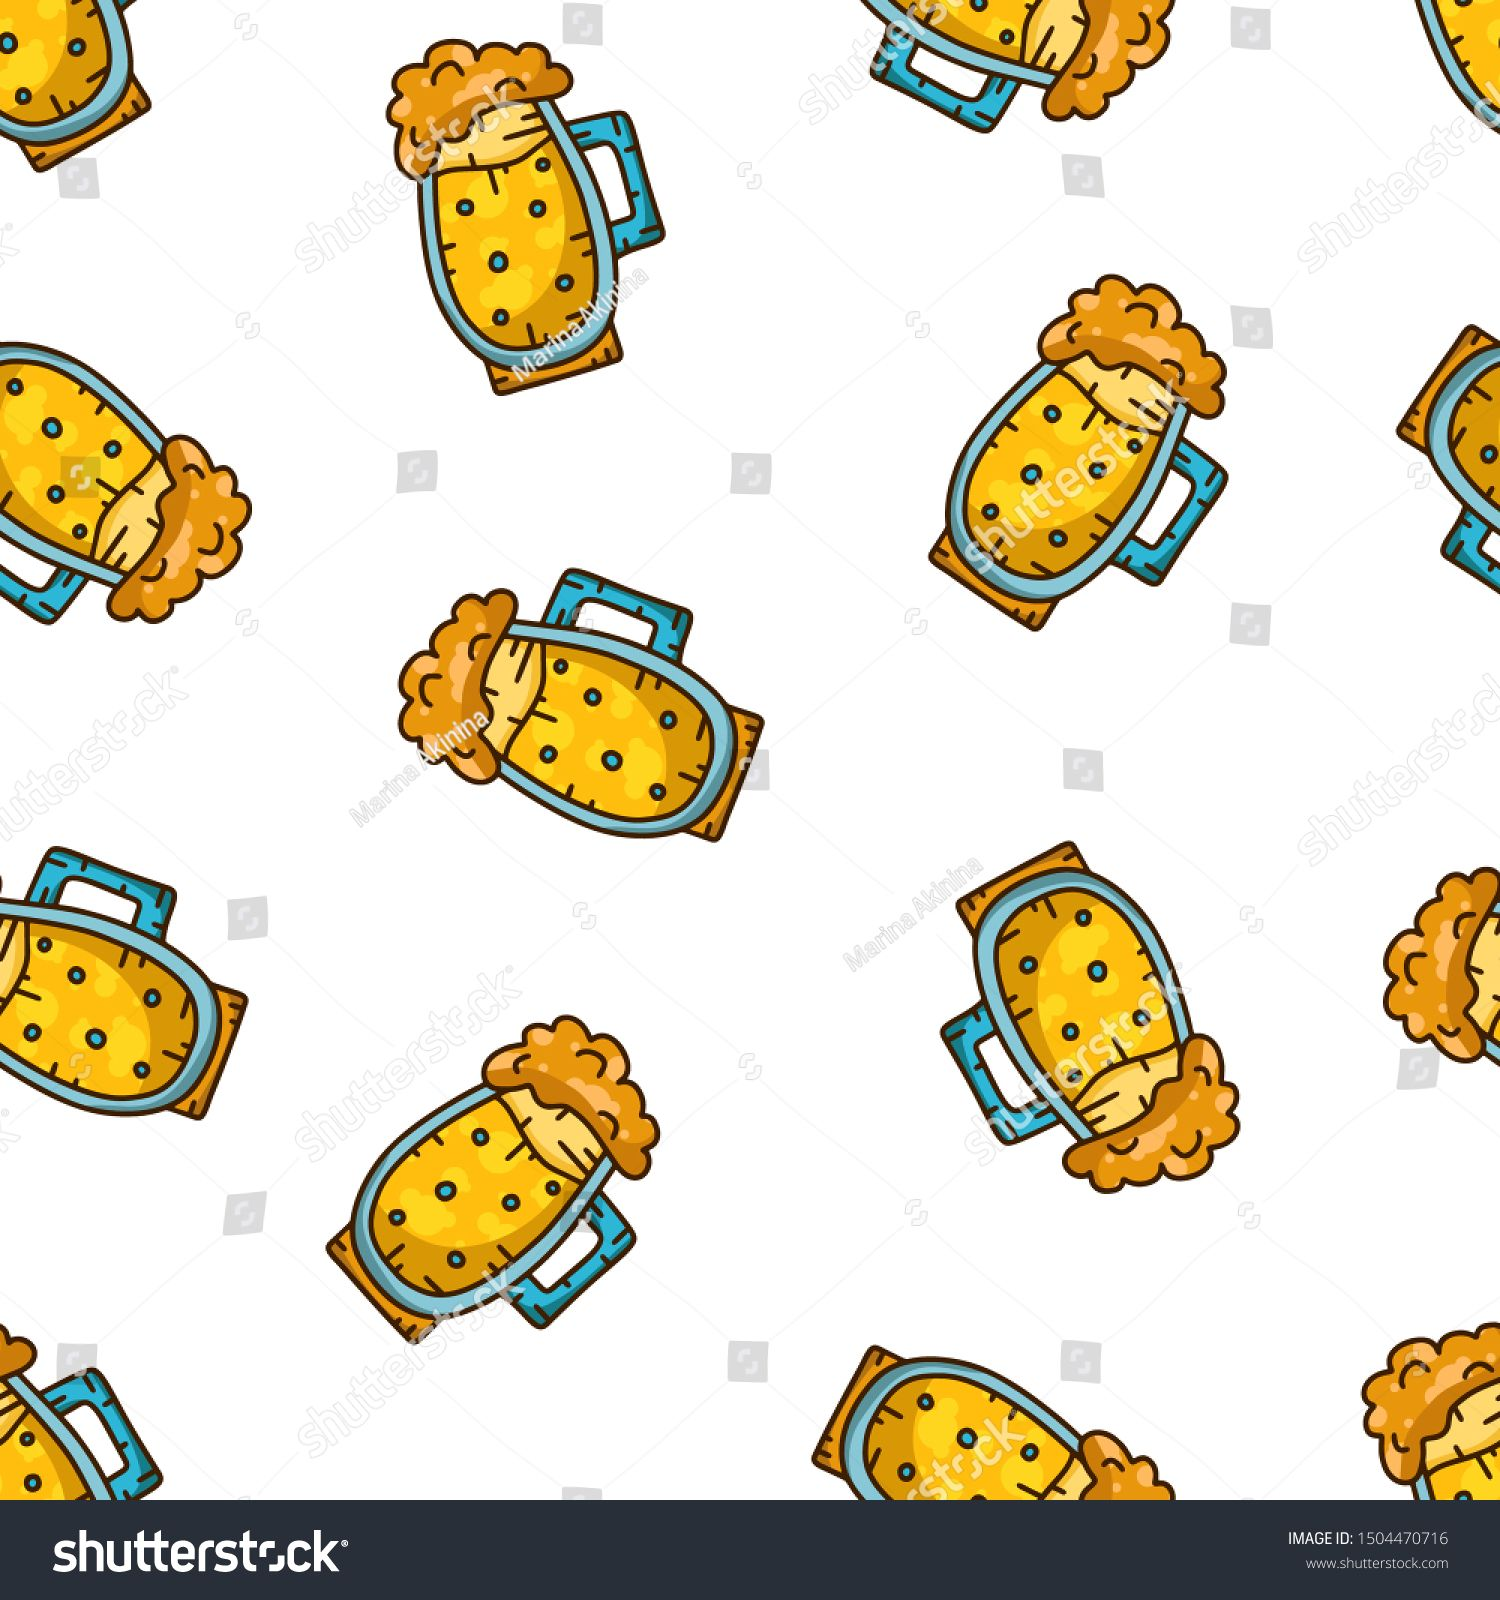 Color seamless food pattern. Products texture. Hand drawn pint on white background. Doodle vector illustration for drinks, beer packaging, fabric. Mug of beer with foam #Sponsored , #AD, #Hand#texture#drawn#white